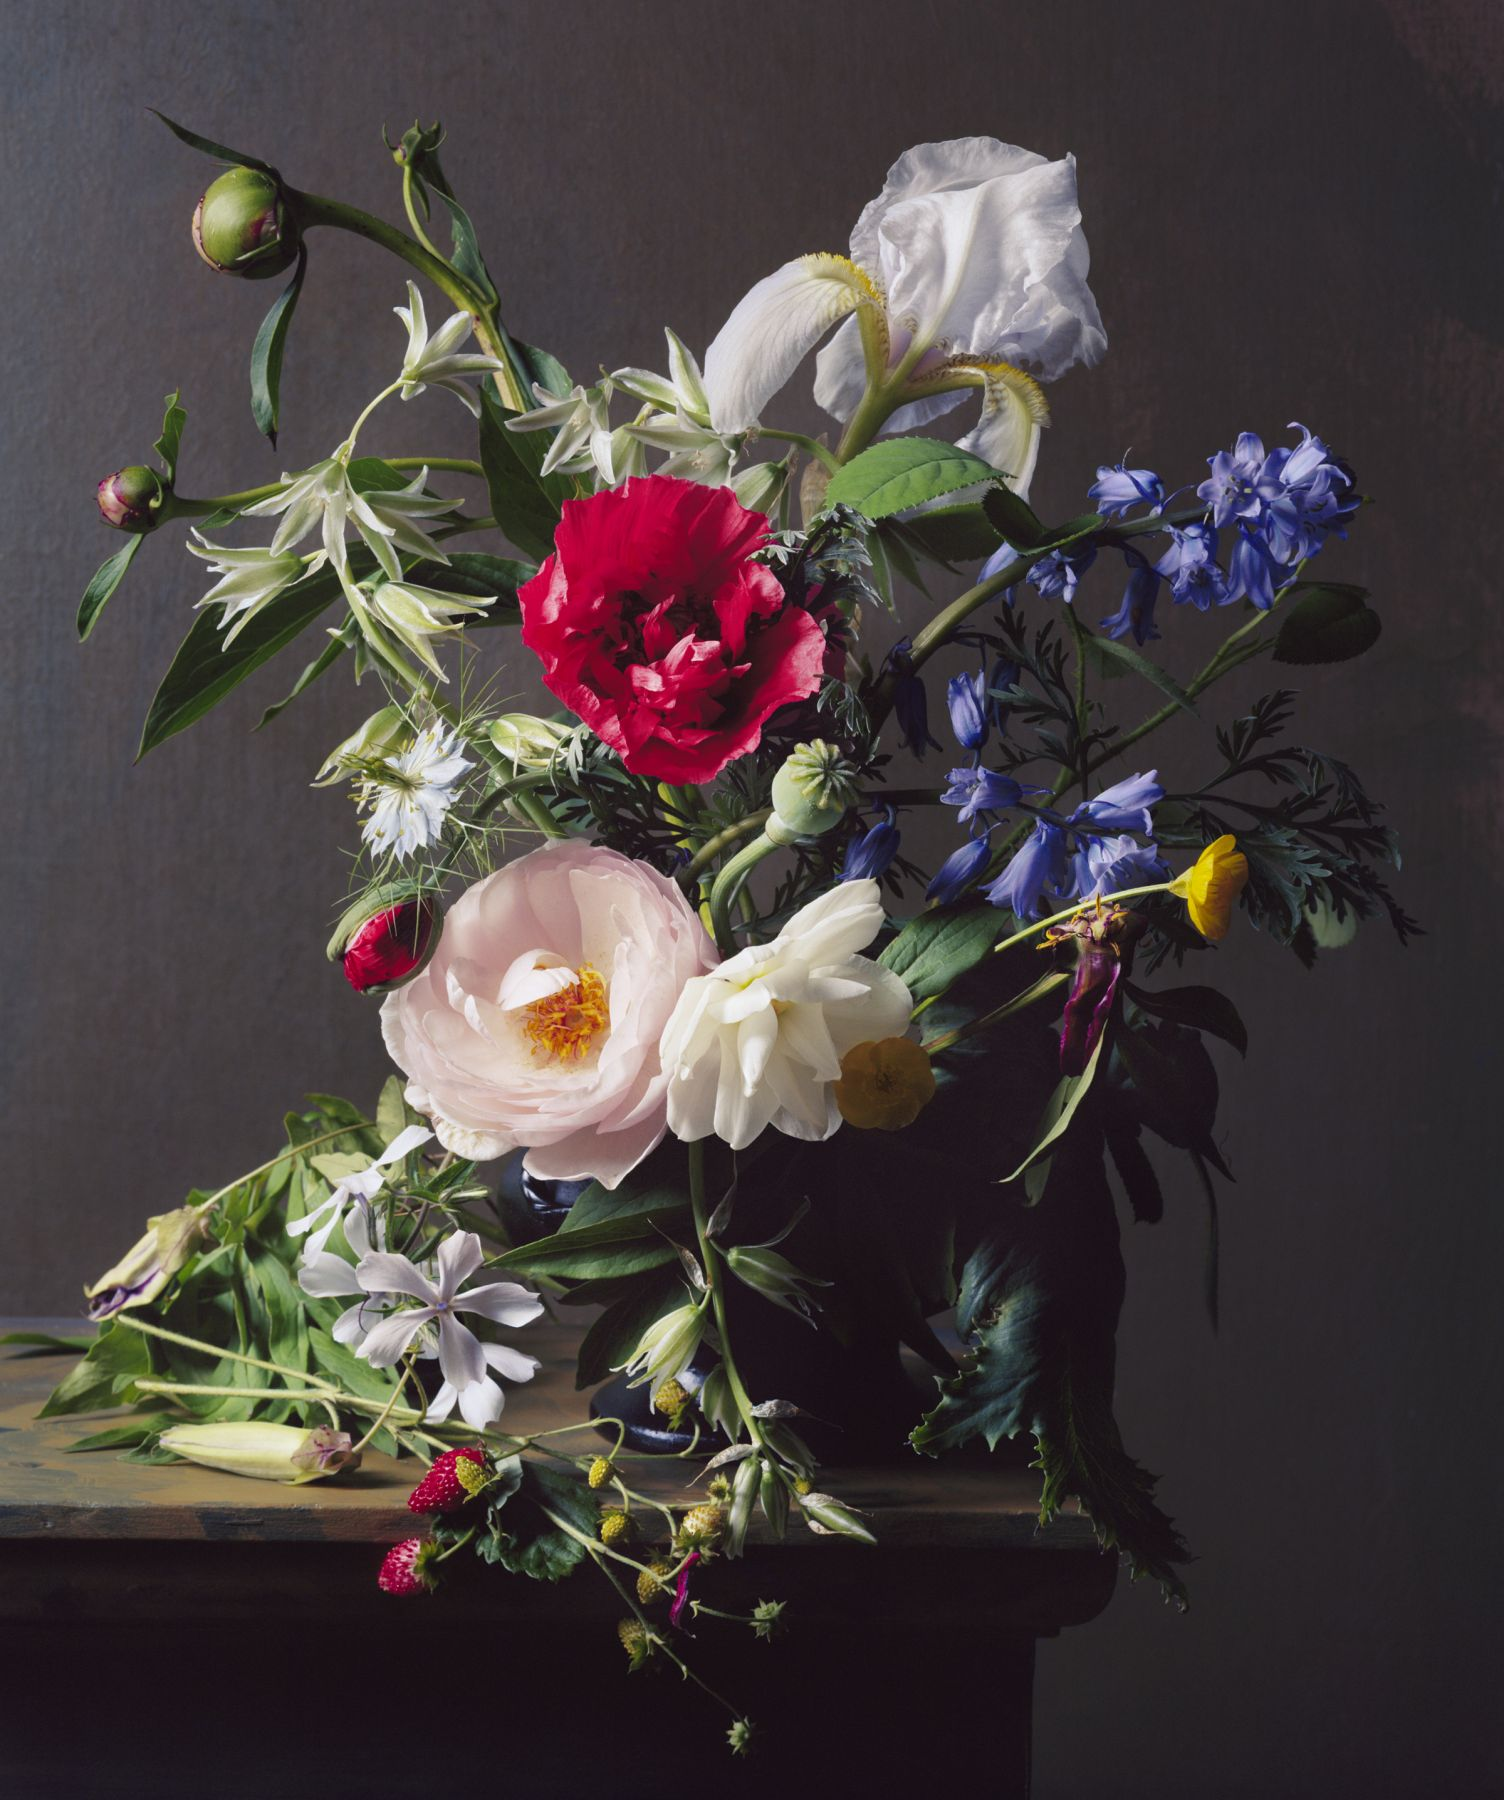 Photograph by Sharon Core titled 1841 from the series 1606-1907 of a floral still life arranged in the style of a classical painting